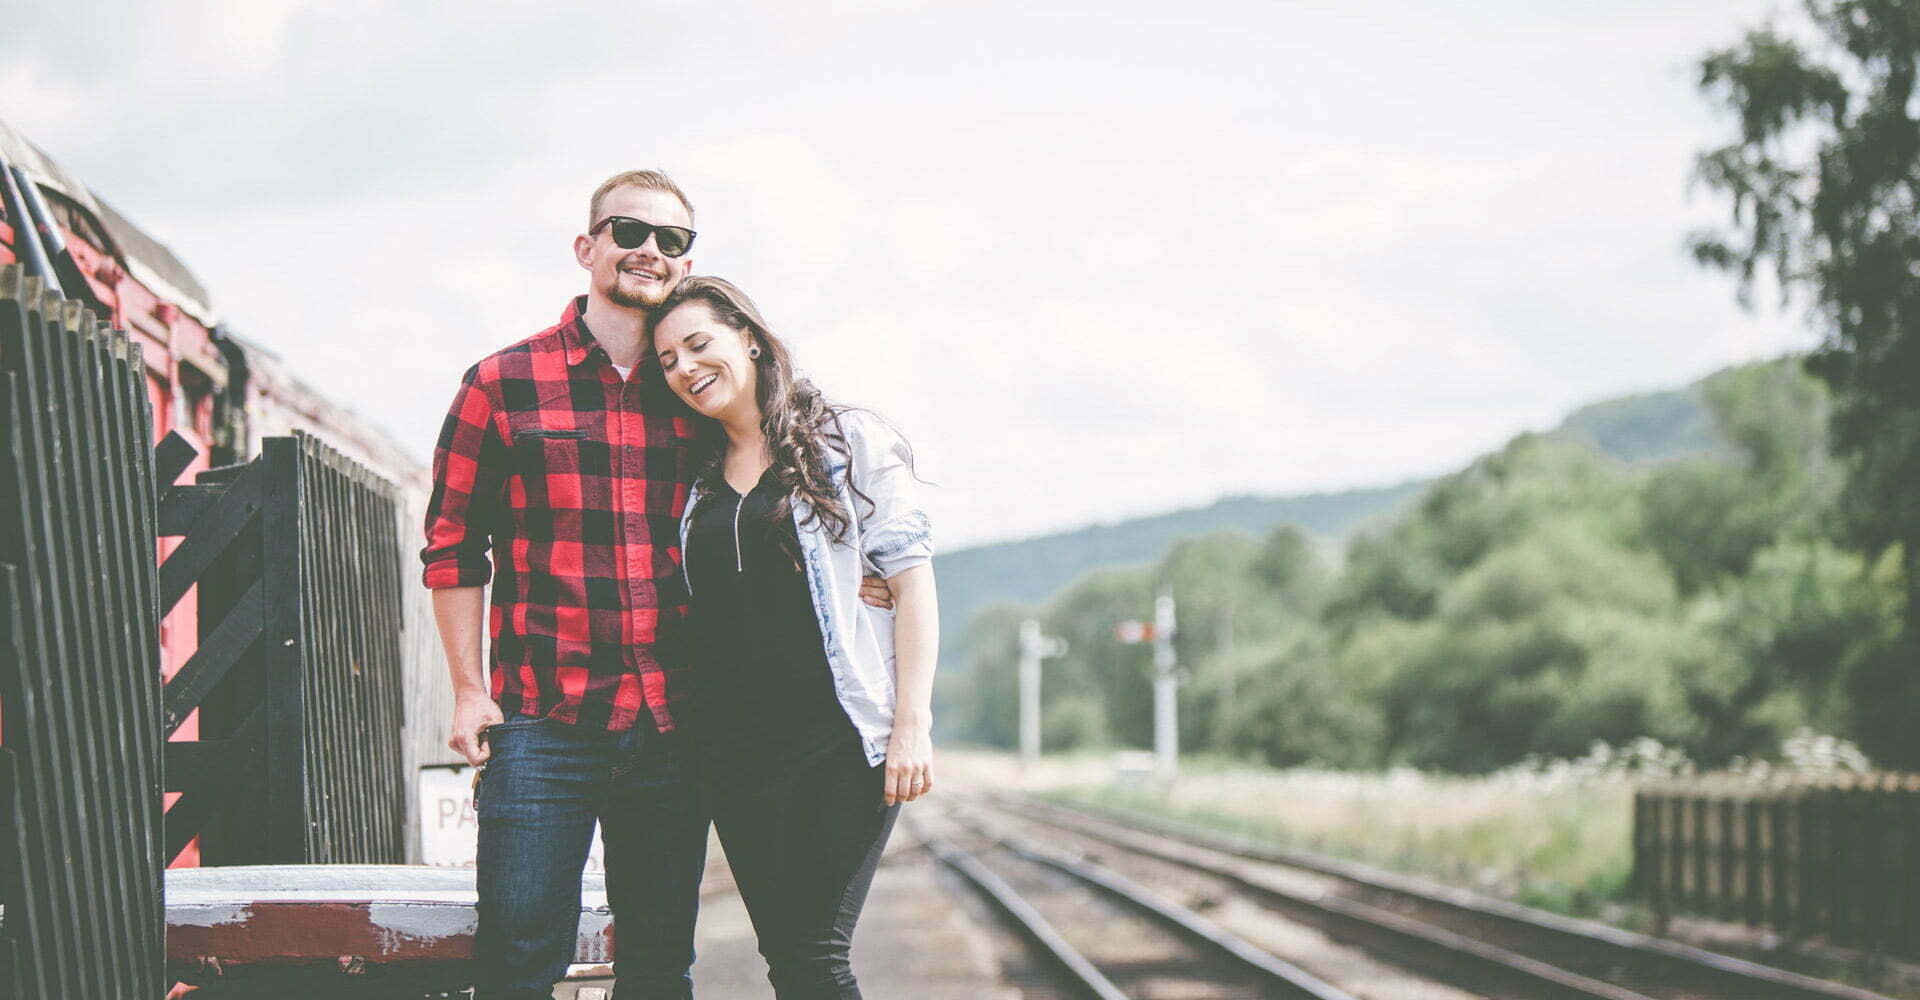 Levisham train station pre wedding engagement Levisham Wedding Photographer Yorkshire Wedding Photography North Yorkshire by Chris and Hazel Wedding Photography Ross Patterson Laurelin Matulis